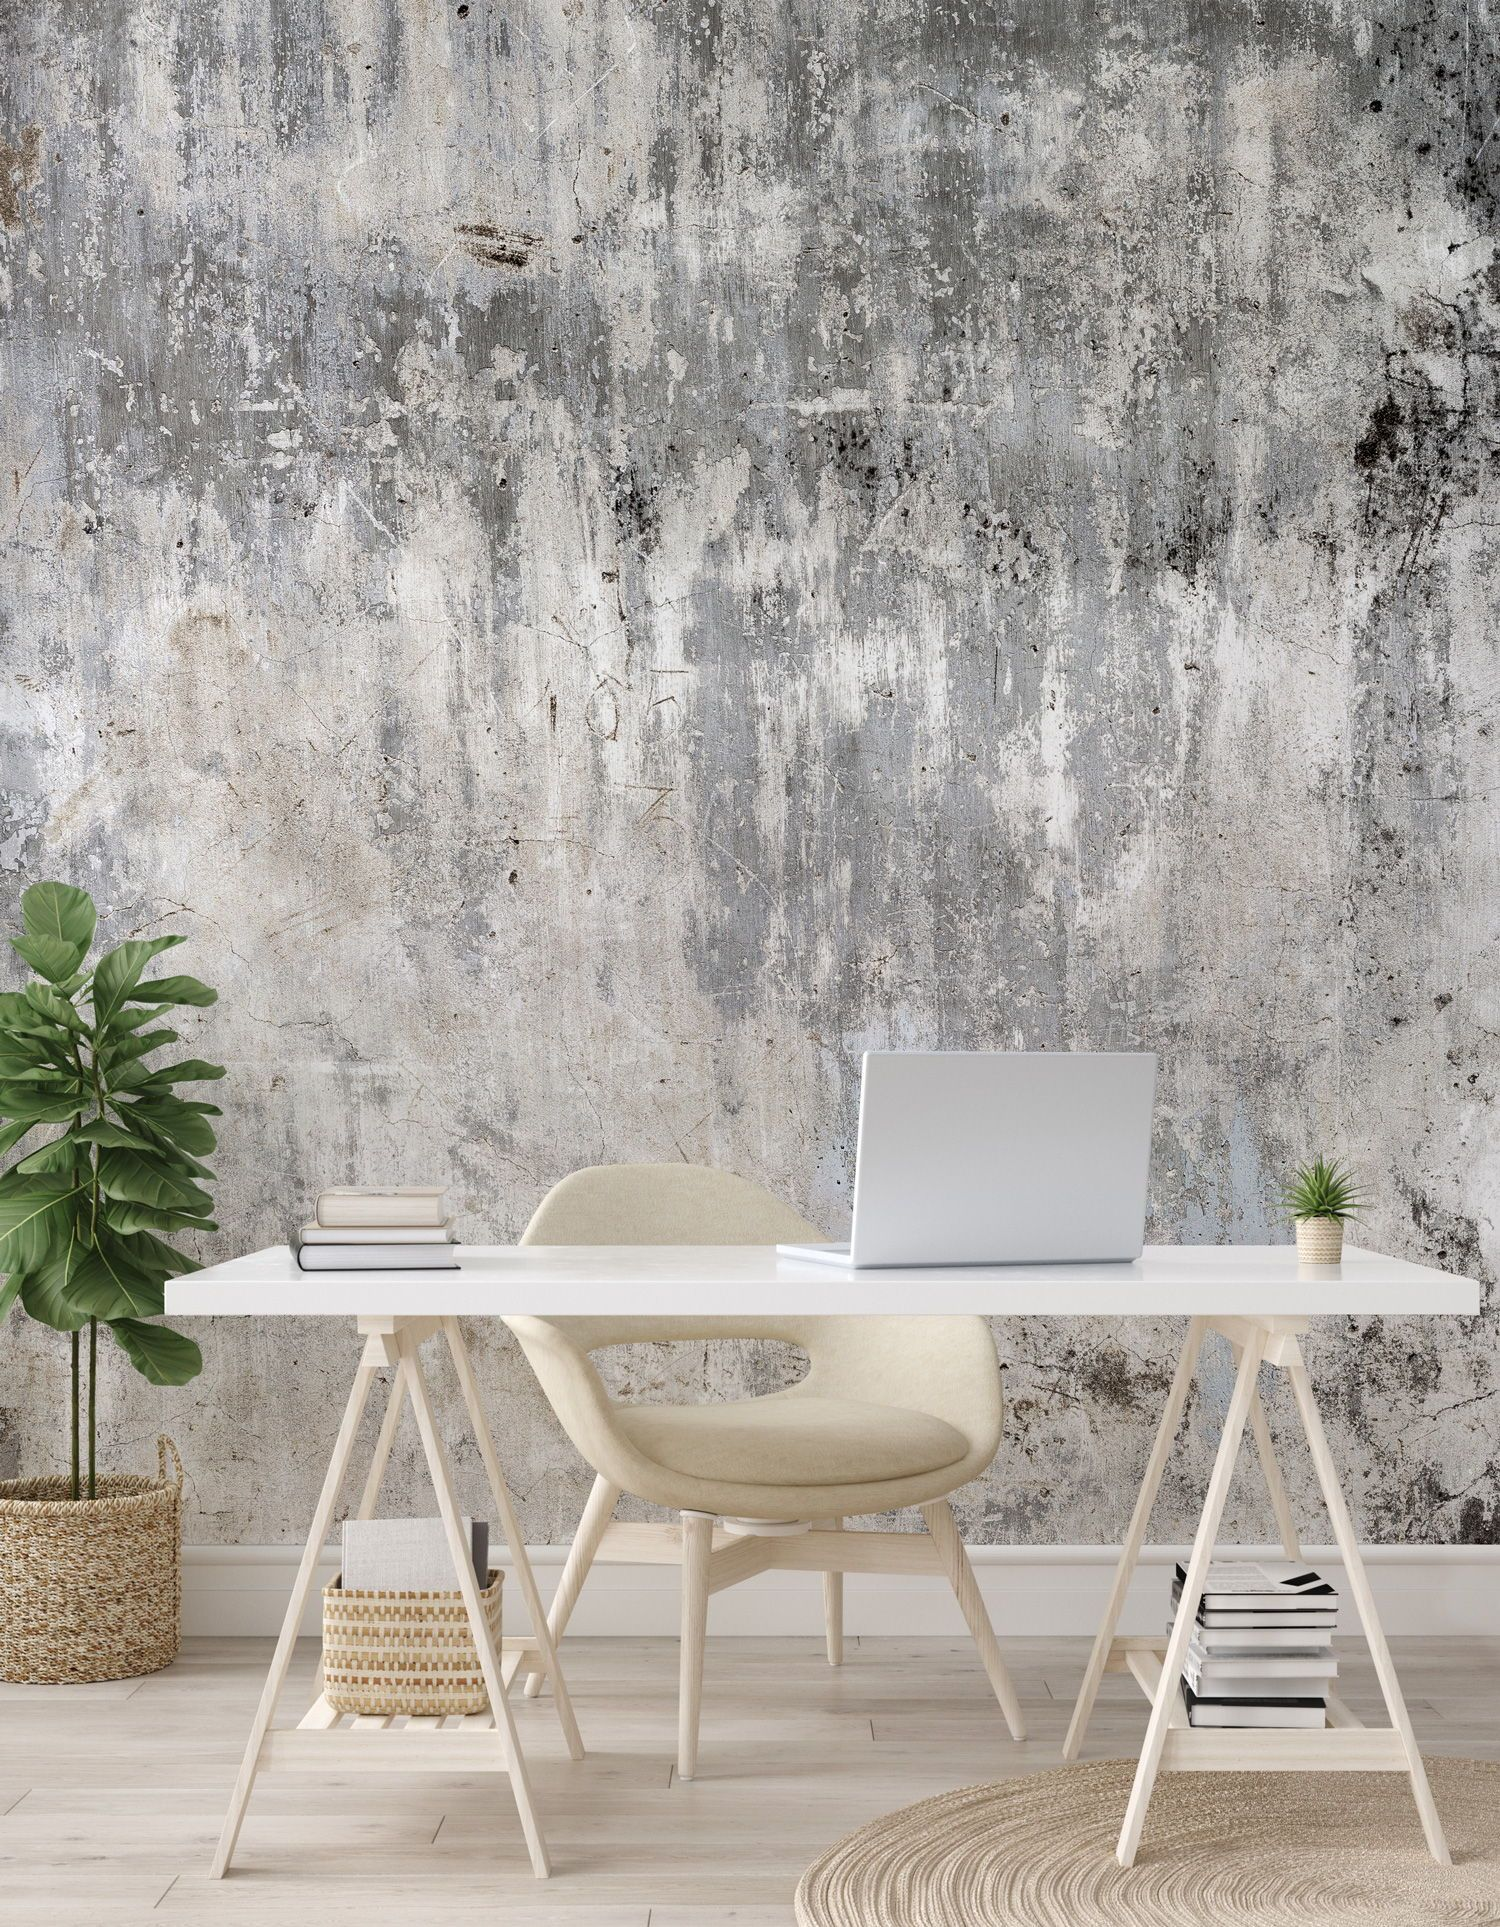 Go For The Industrial Look With A Made To Measure Concrete Wallpaper Mural From Wallsauc Feature Wall Bedroom Wallpaper Bedroom Feature Wall Concrete Wallpaper